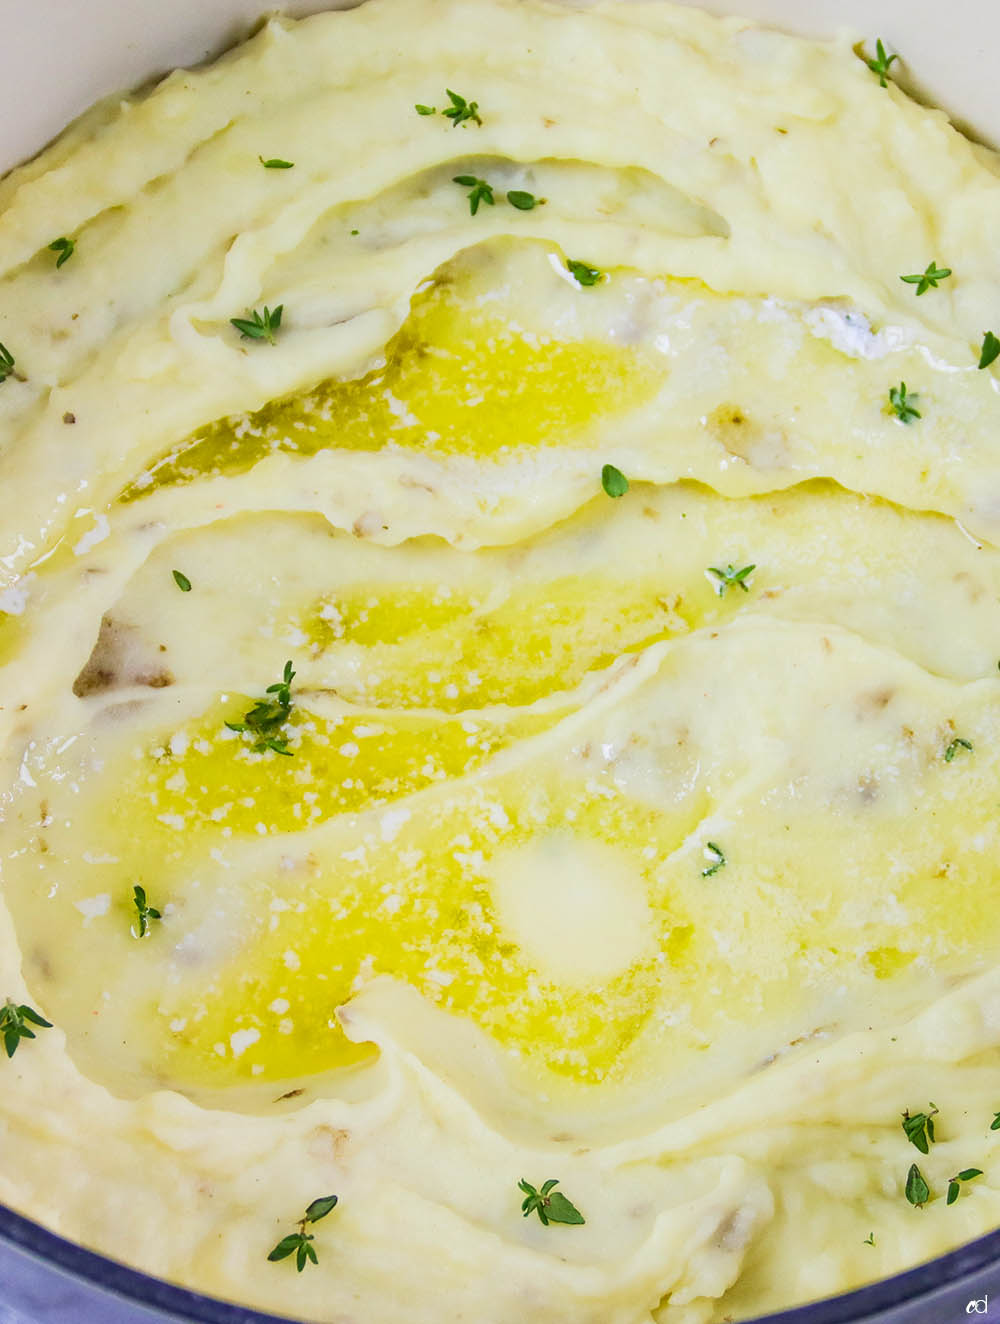 Garlic and Leek Creme Fraiche Mashed Potatoes